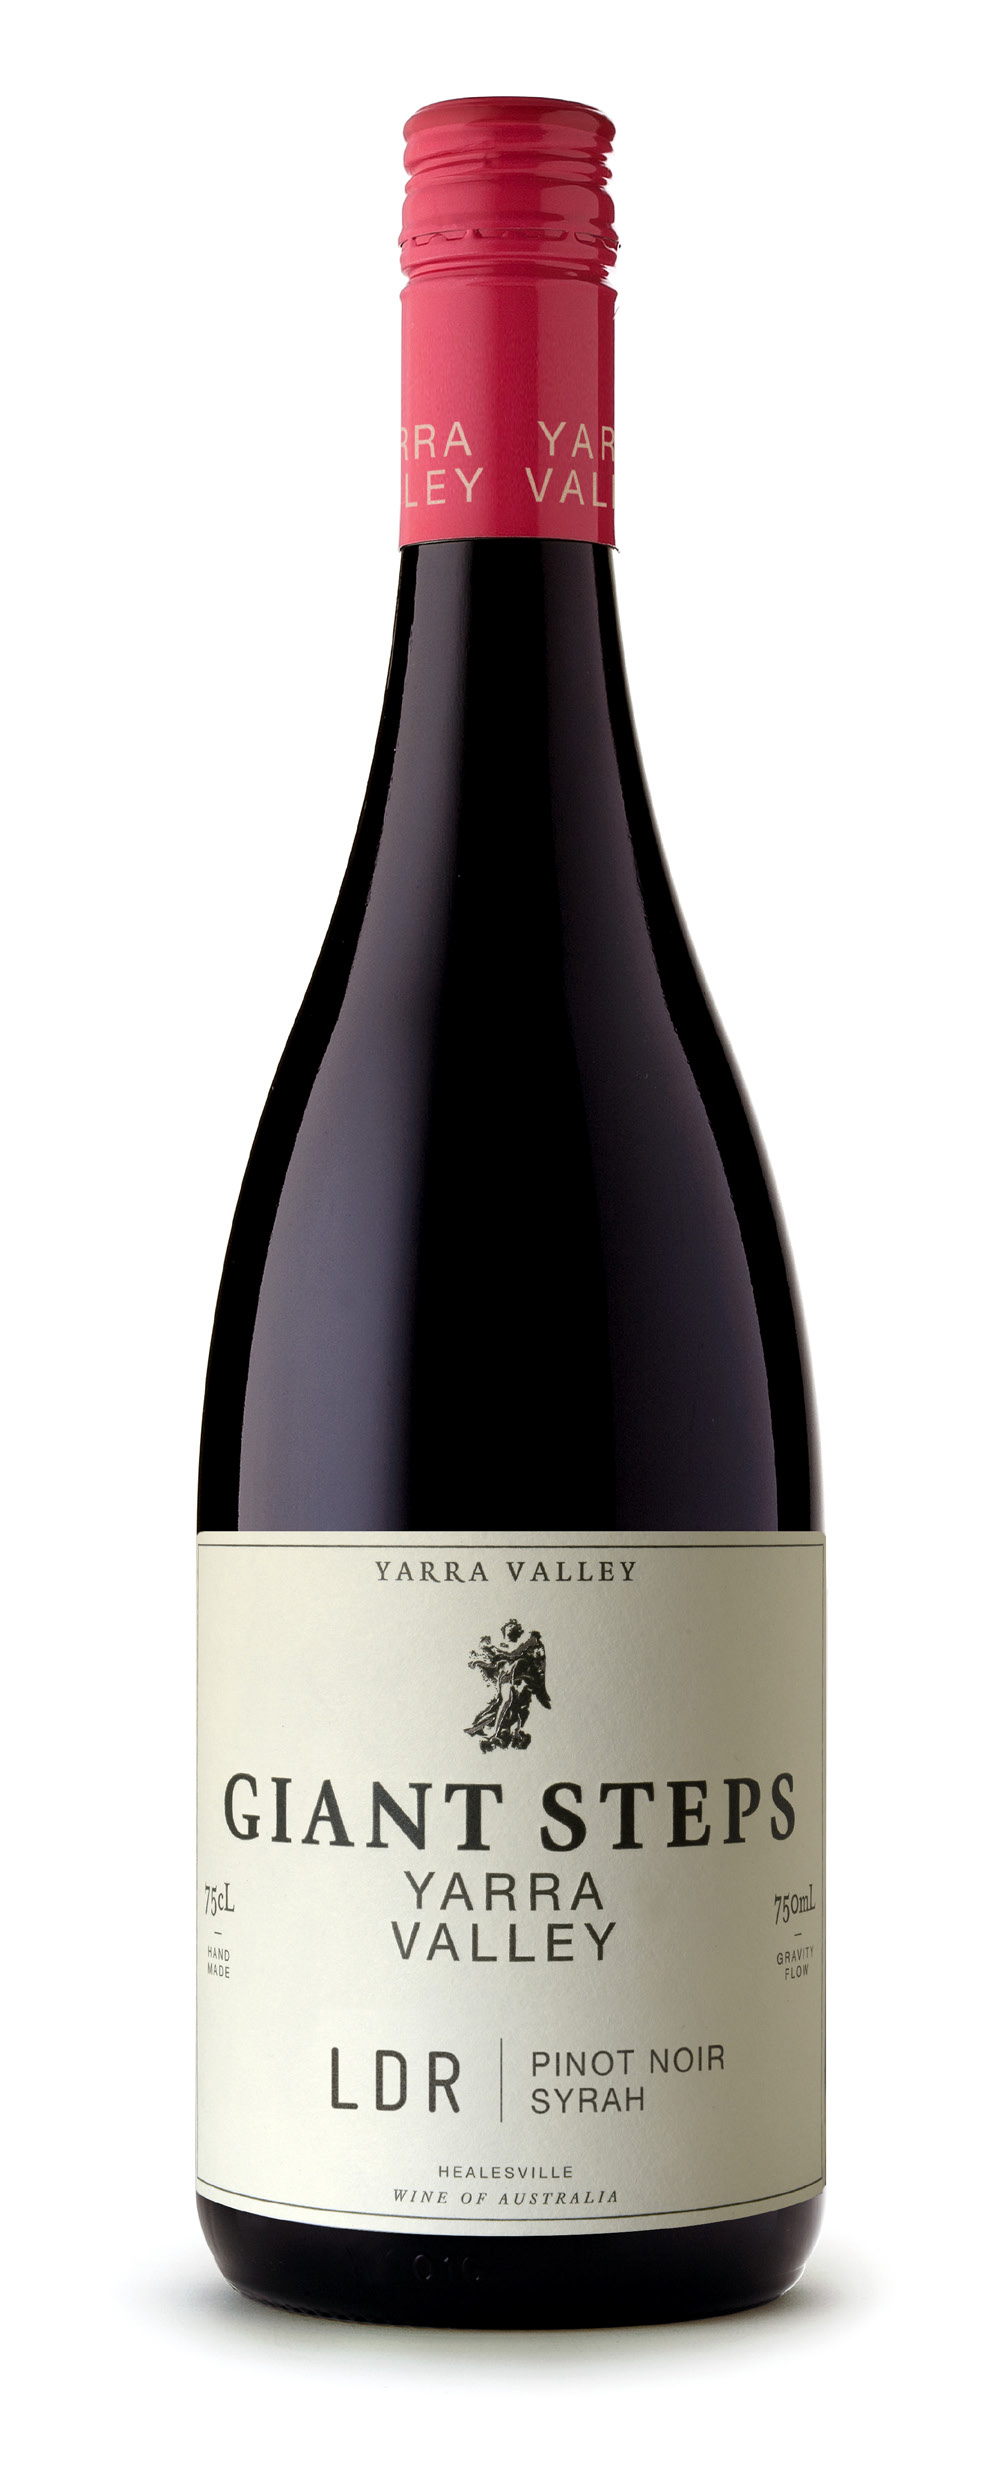 Giant Steps, Yarra Valley Light Dry Red 2017